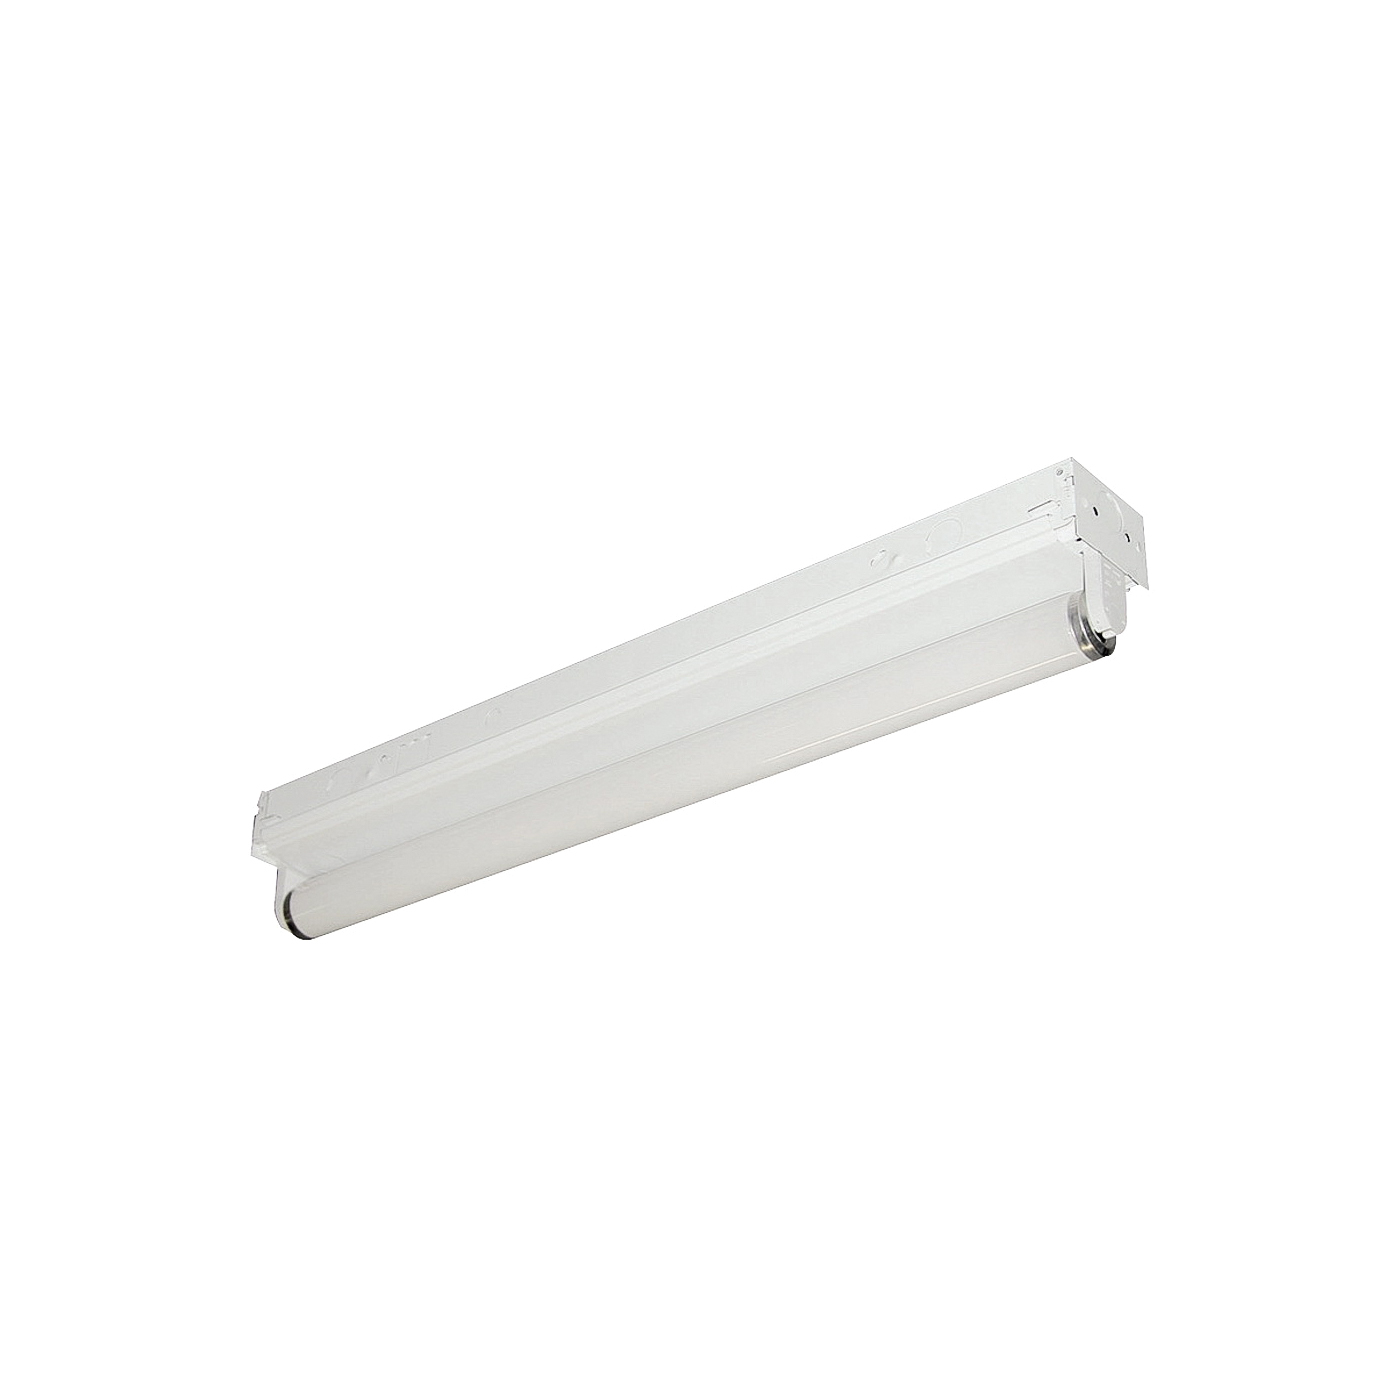 Picture of LITHONIA LIGHTING 208GJ4 Strip Light, 120 V, 1-Lamp, Steel Fixture, White Fixture, Gloss Fixture